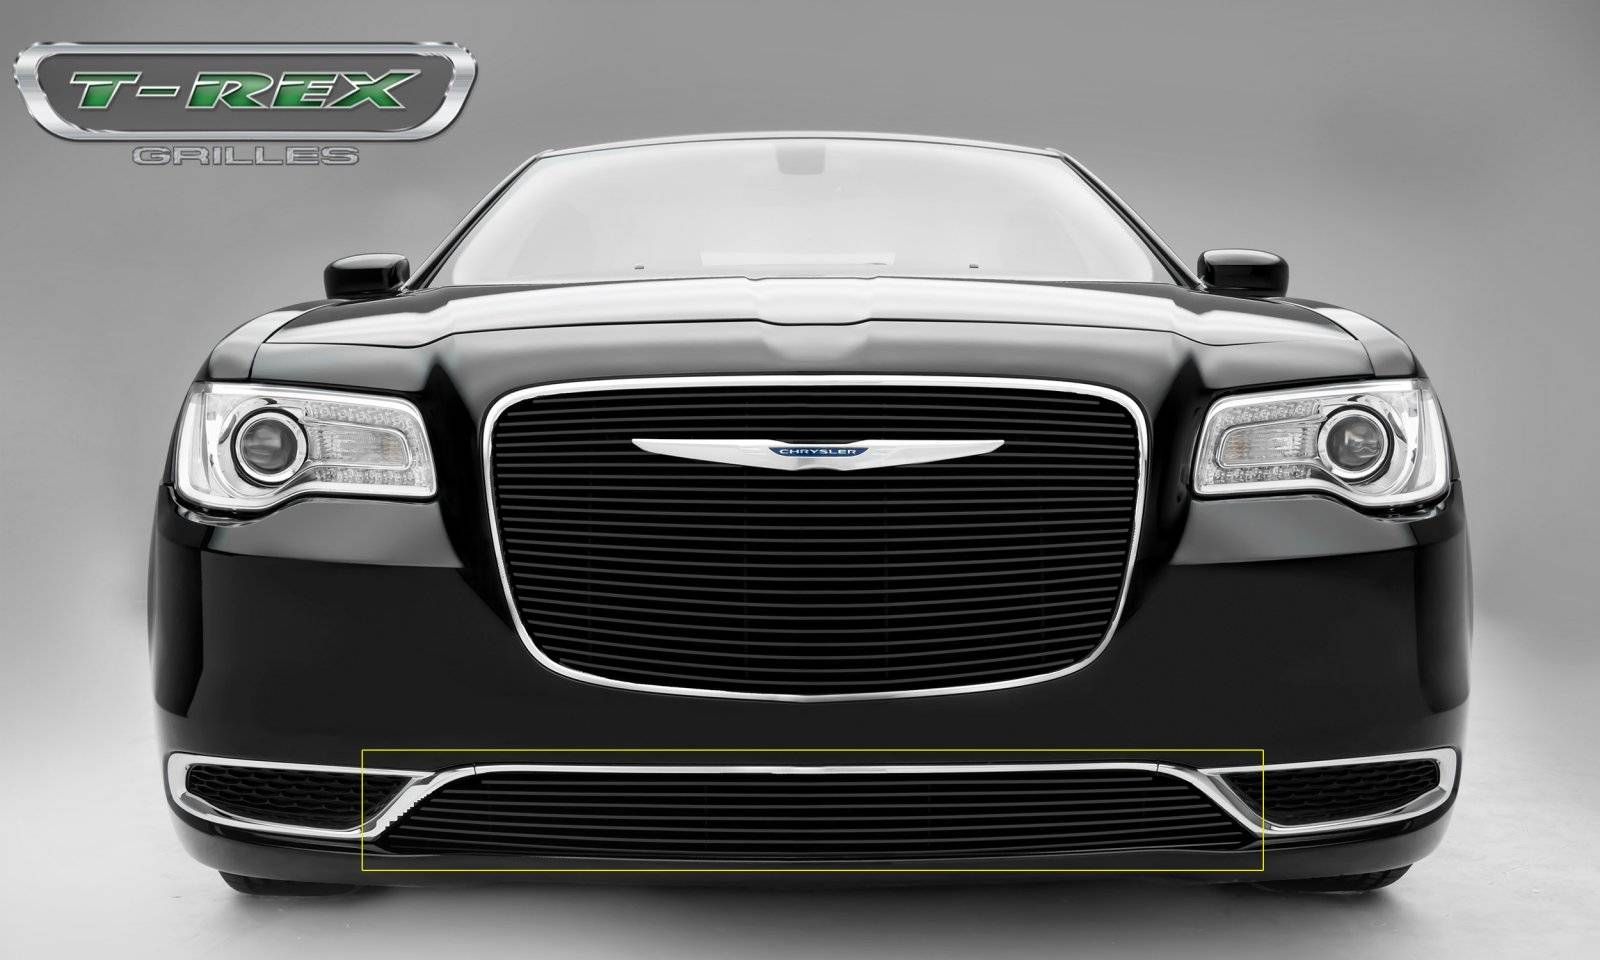 T-REX Chrysler 300 - Billet Series - Bumper Grille Overlay with Black Powder Coat Aluminum Bars - Pt # 25436B